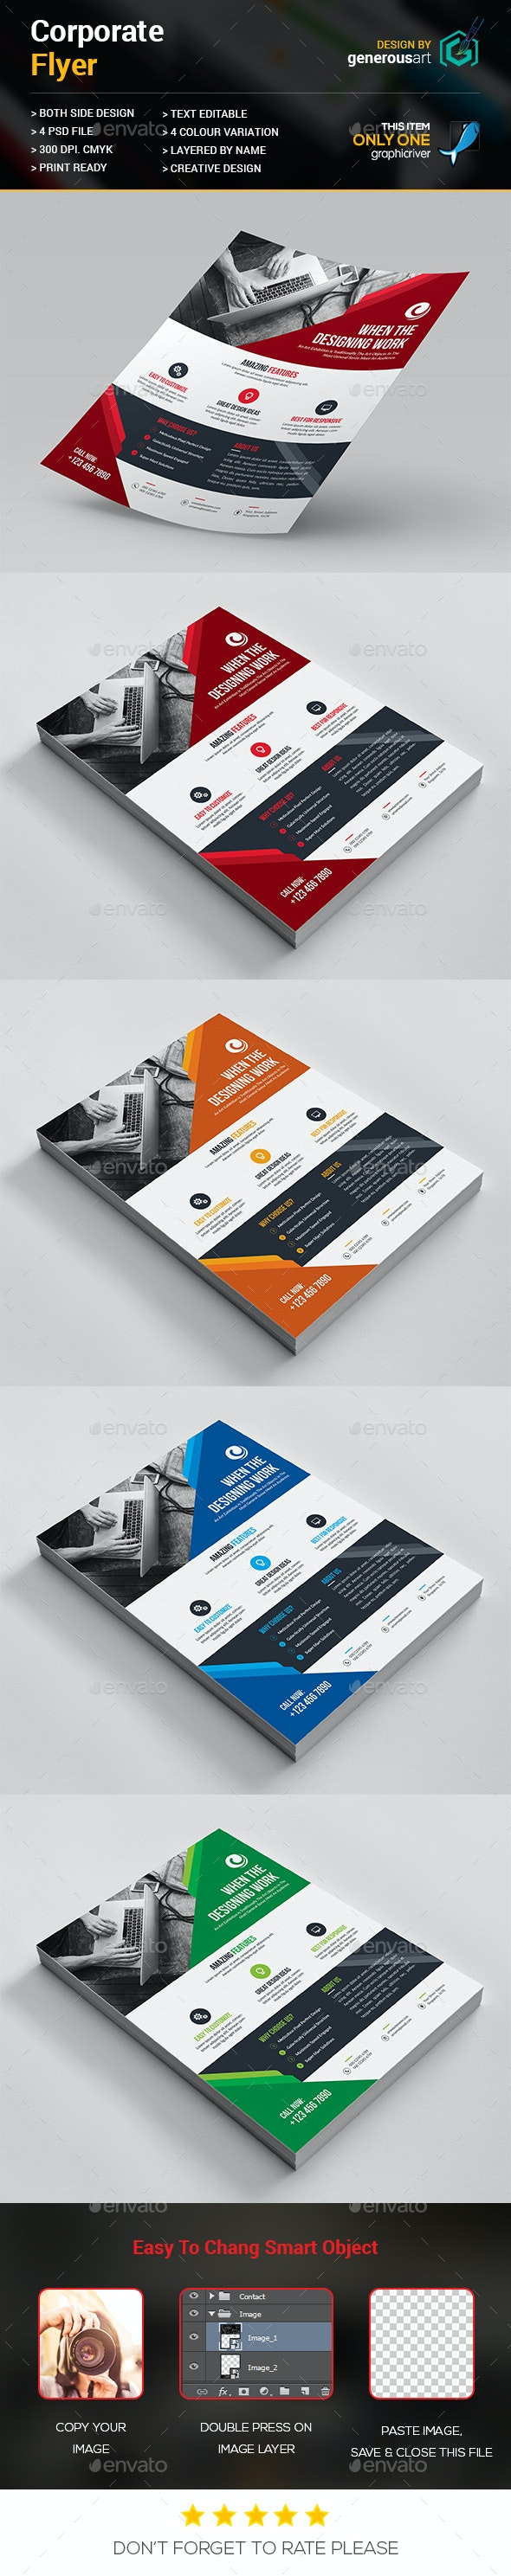 Web Design Flyer - Corporate Flyers